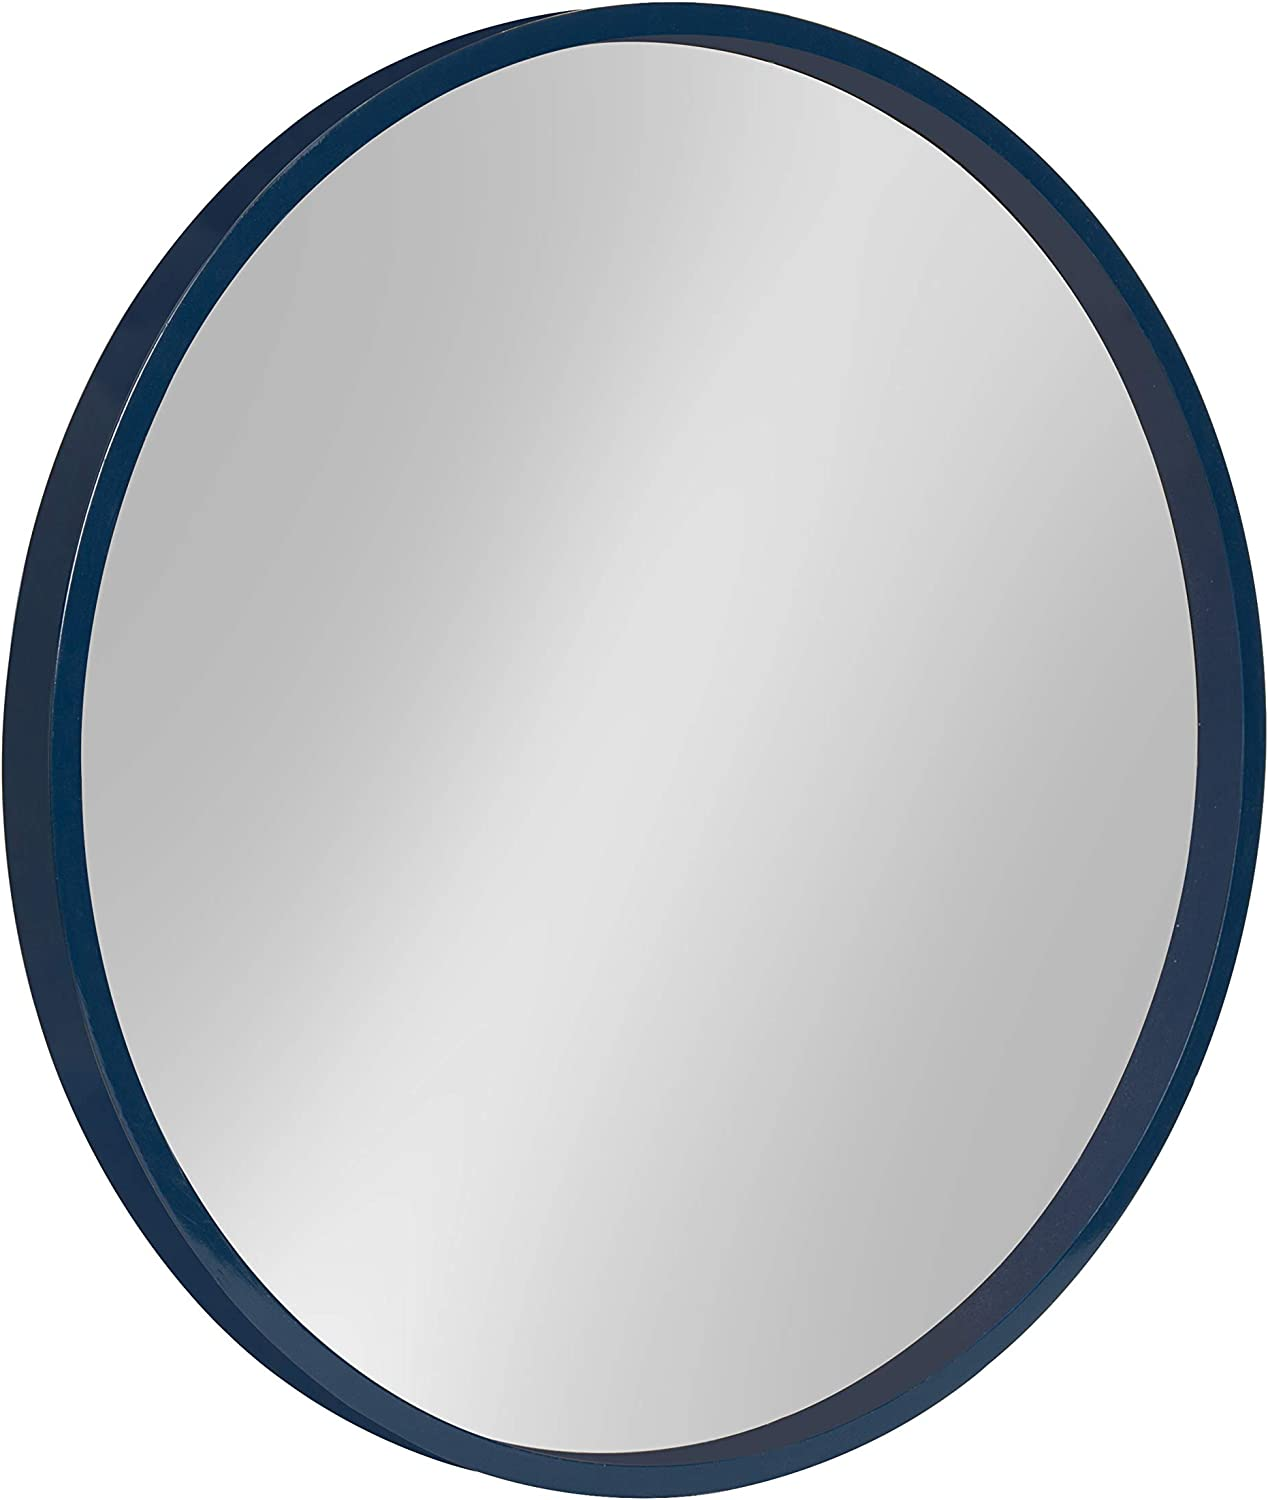 Kate and Laurel Travis Round Wood Accent Wall Mirror Gold 31.5 Diameter